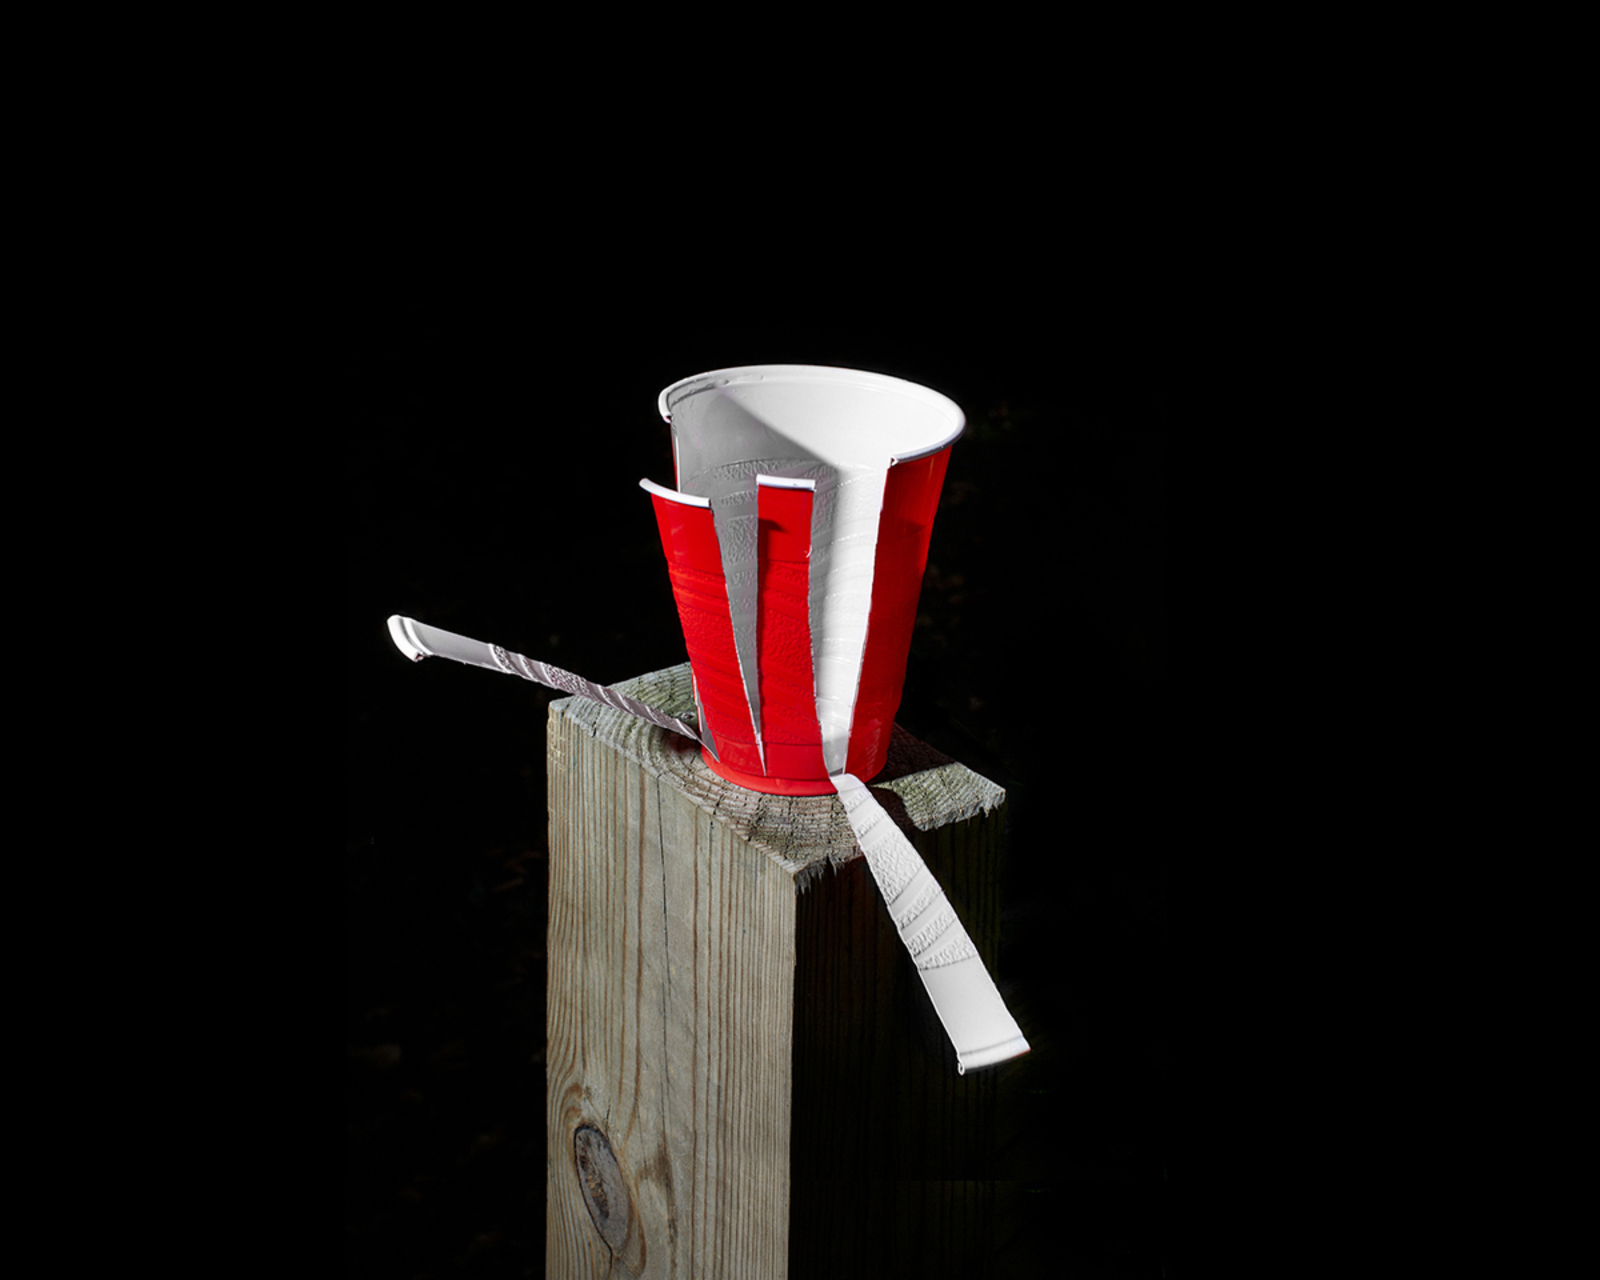 Solo Cup , 2016, 8 x 10 inches